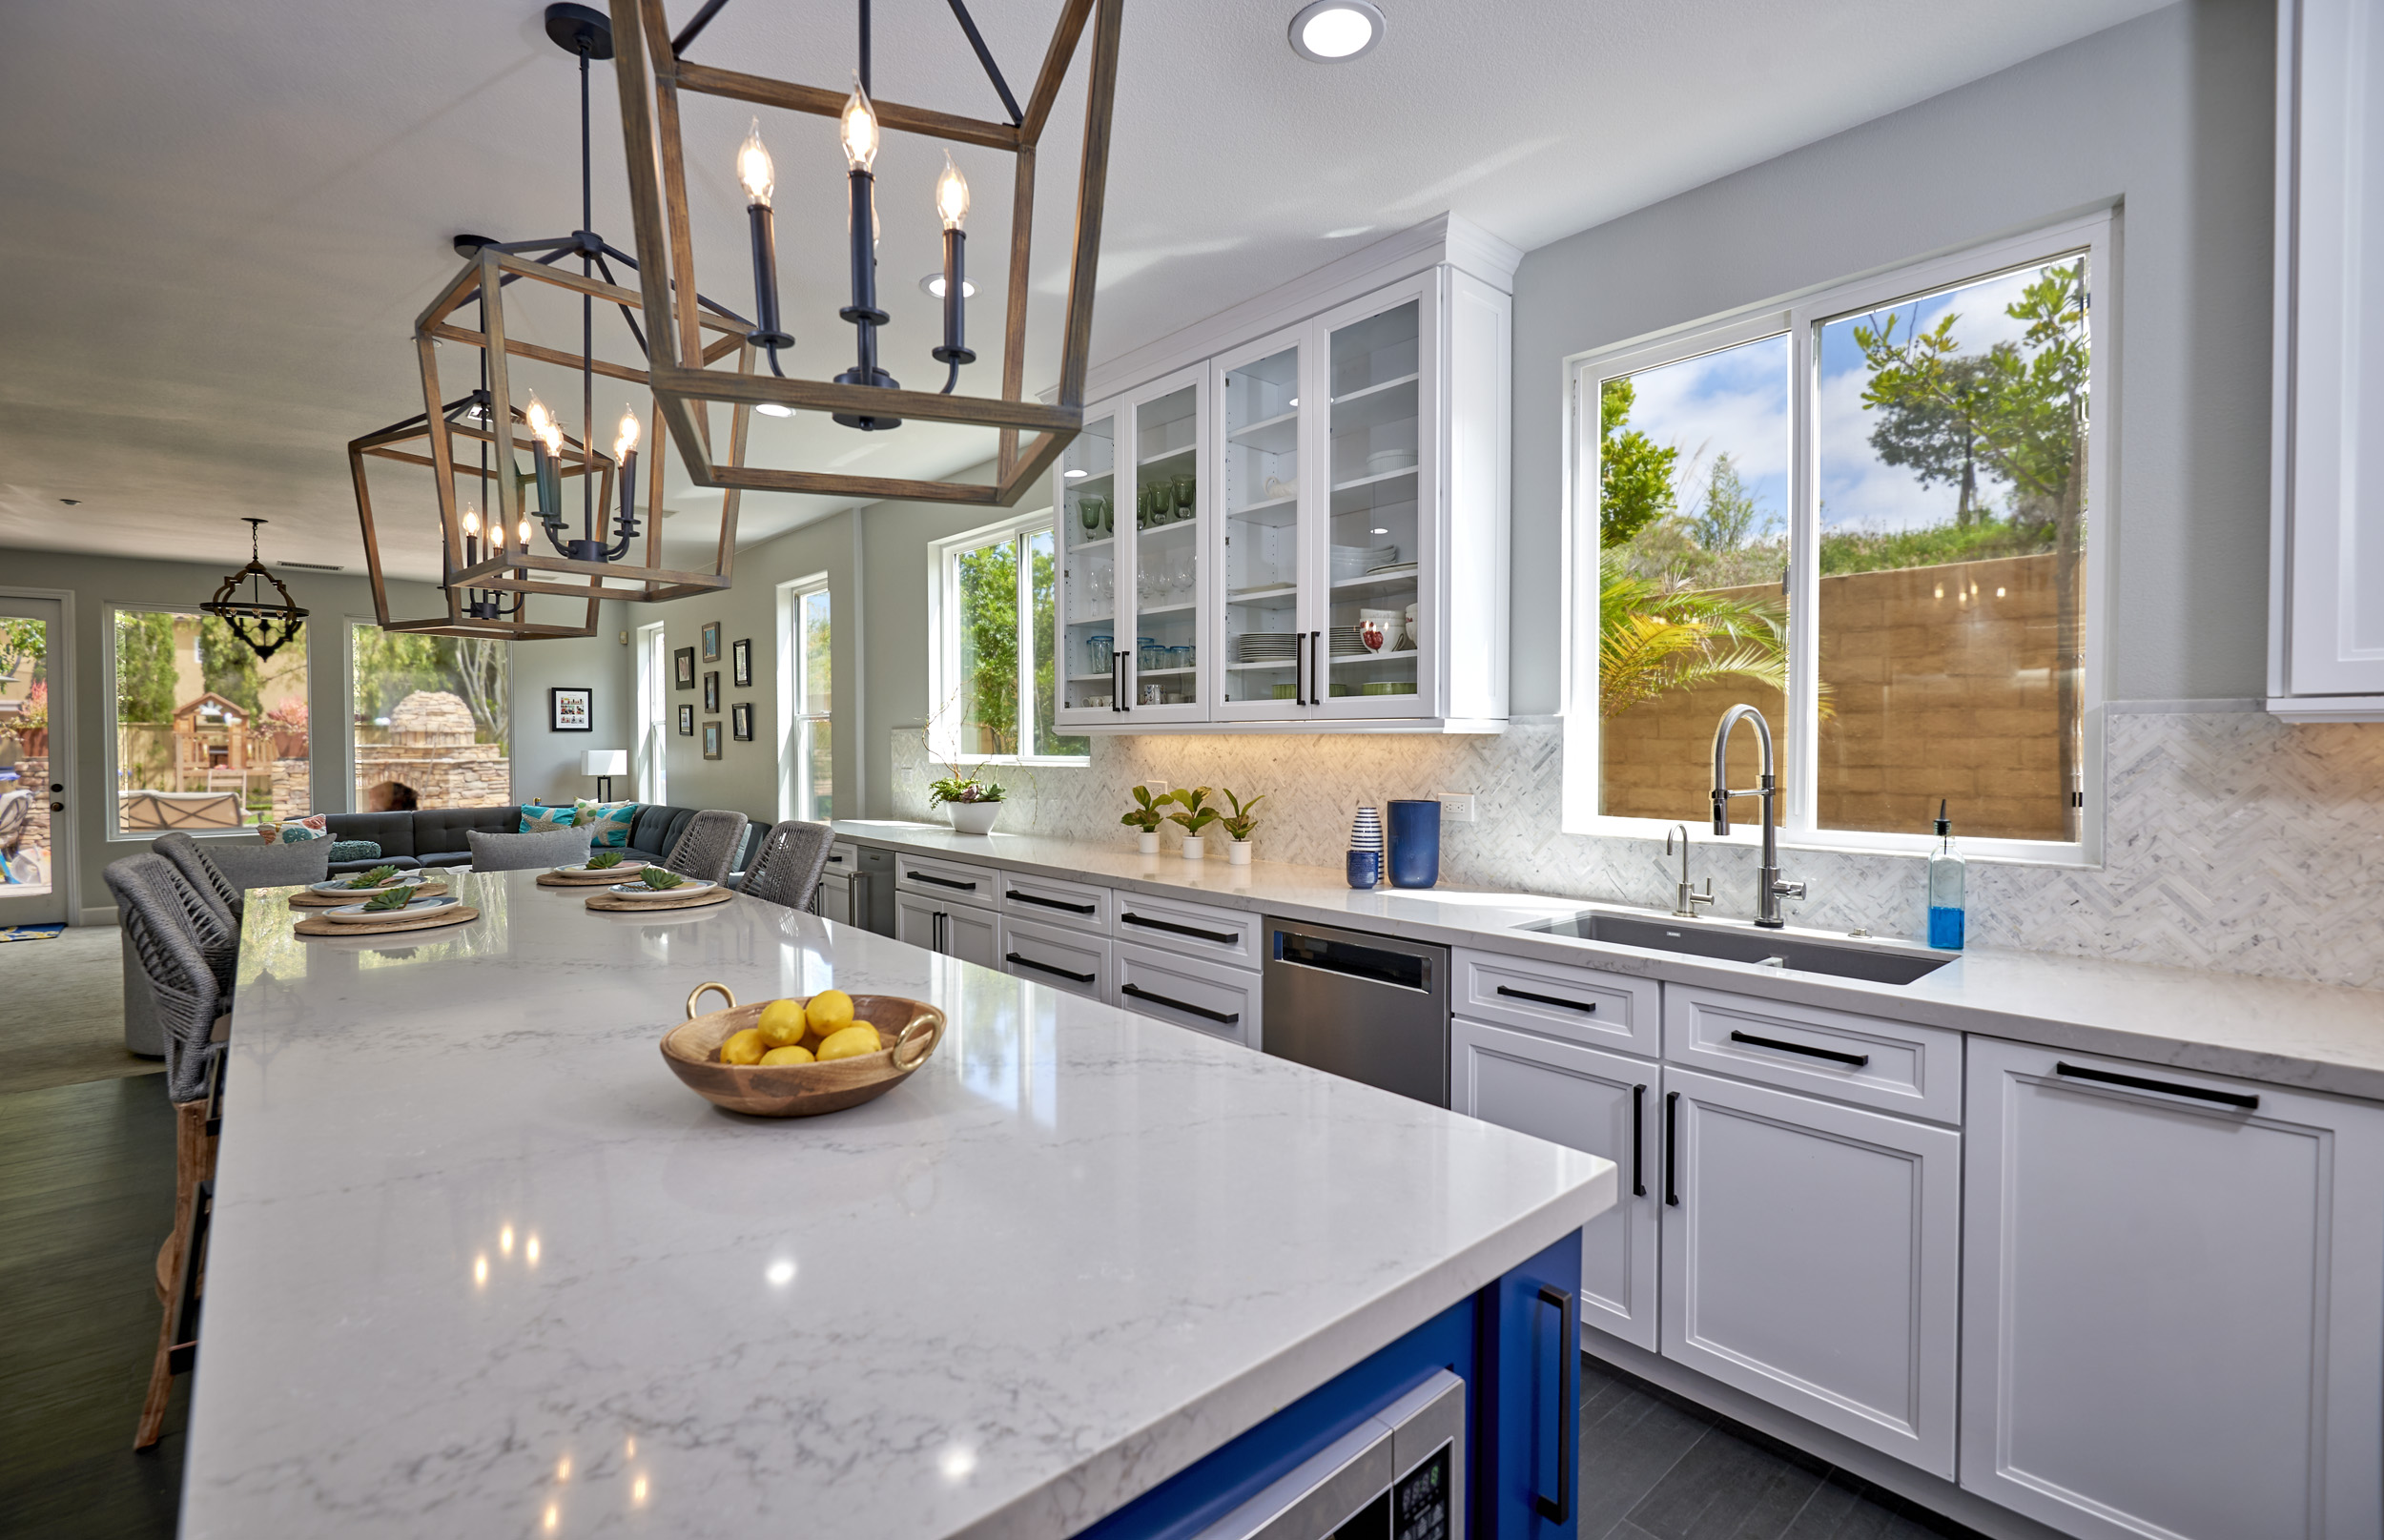 Quartz countertops are the perfect low maintenance finishing element in this kitchen remodel